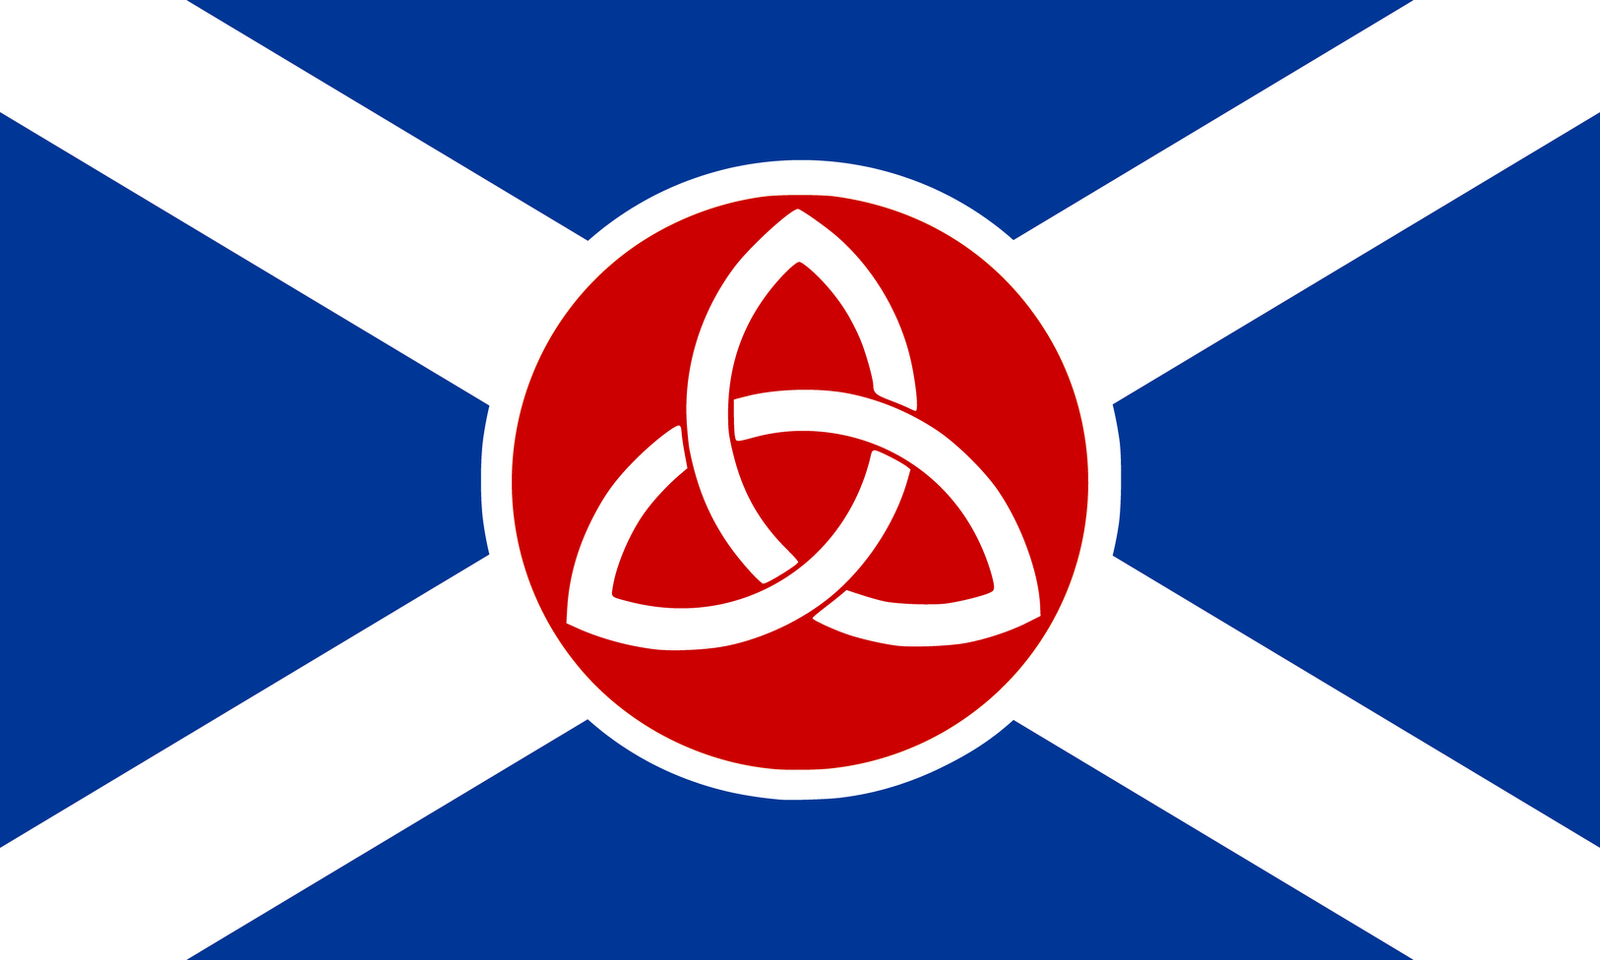 The republic of socialist scotland by achaley on deviantart the republic of socialist scotland by achaley buycottarizona